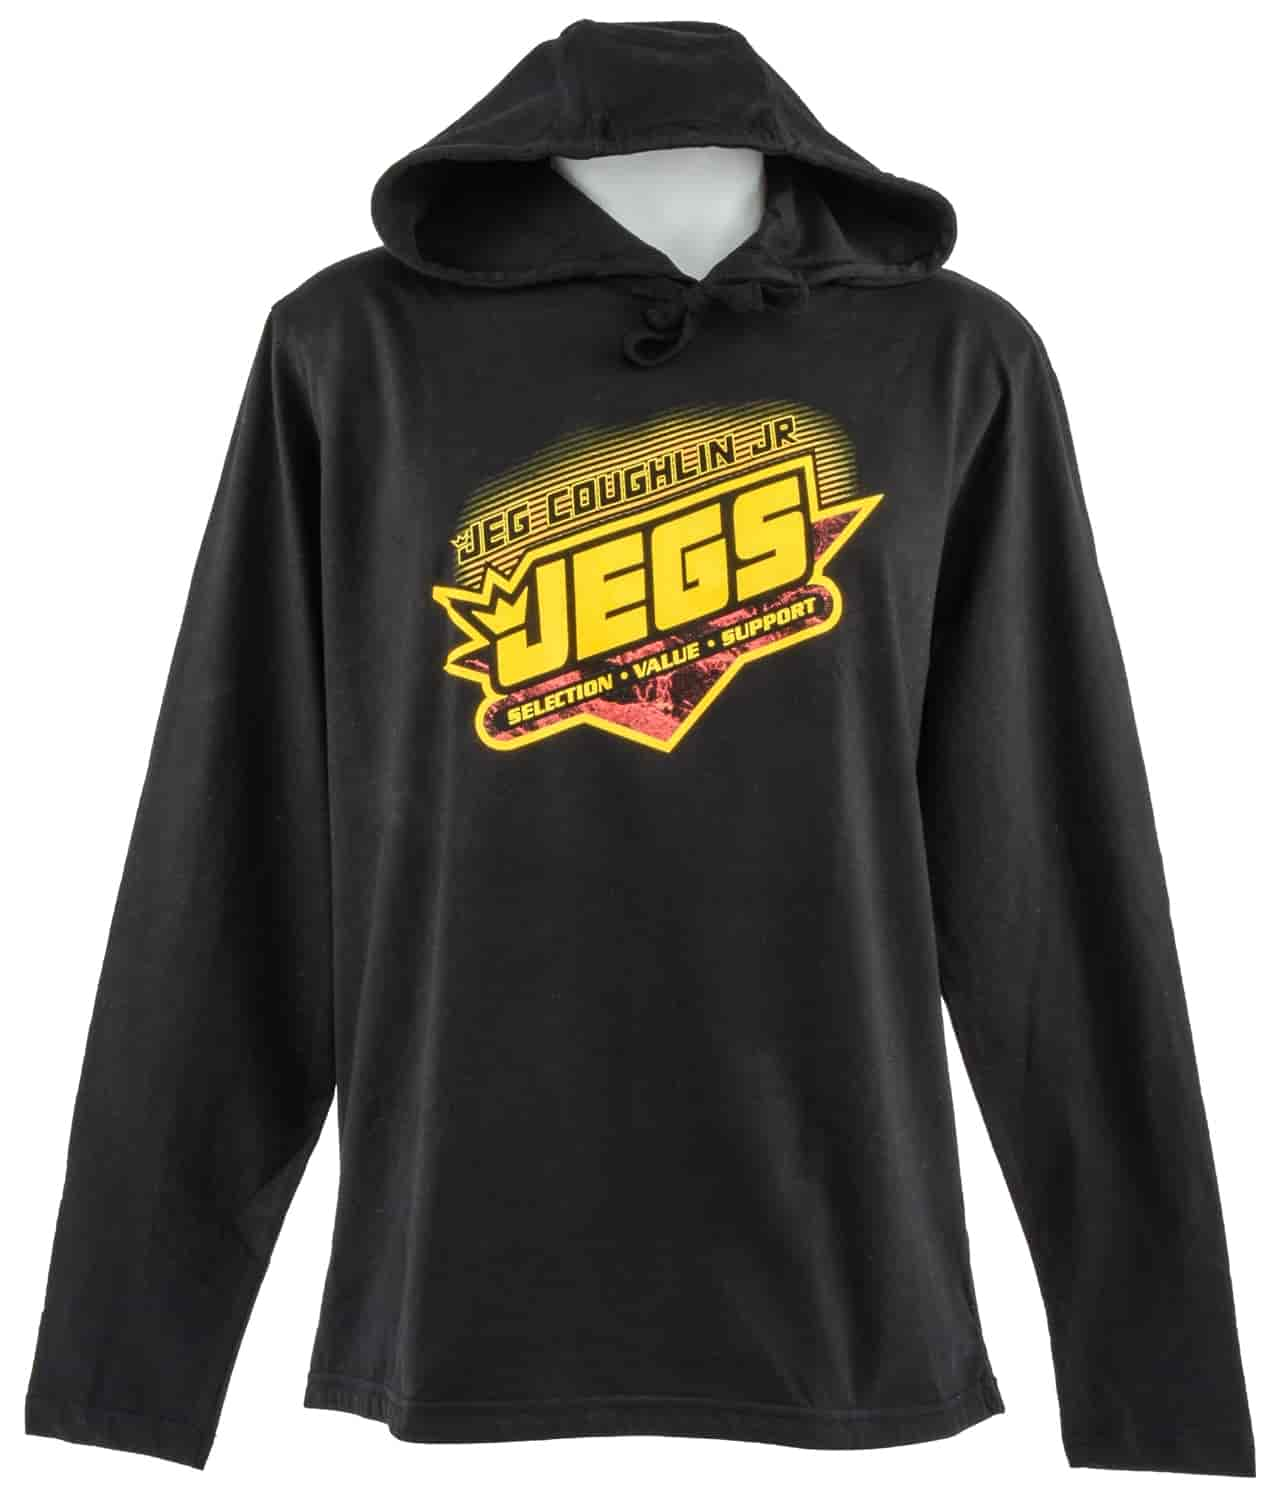 JEGS Apparel and Collectibles